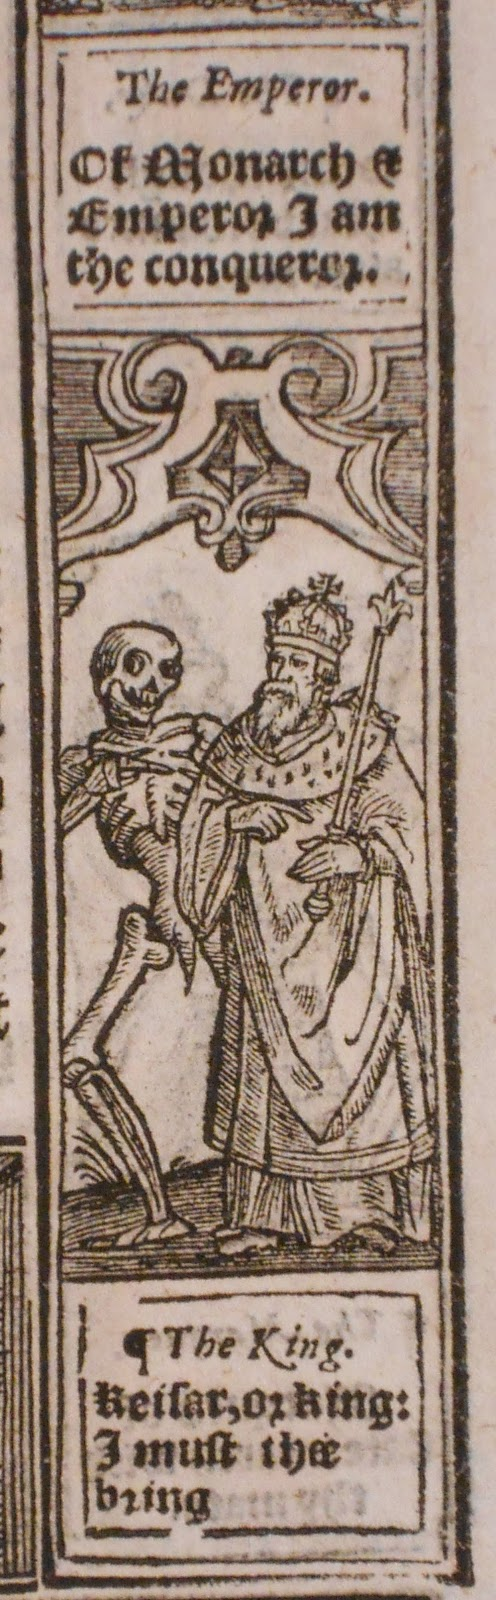 A narrow woodcut showing a skeleton escorting a richly dressed man.